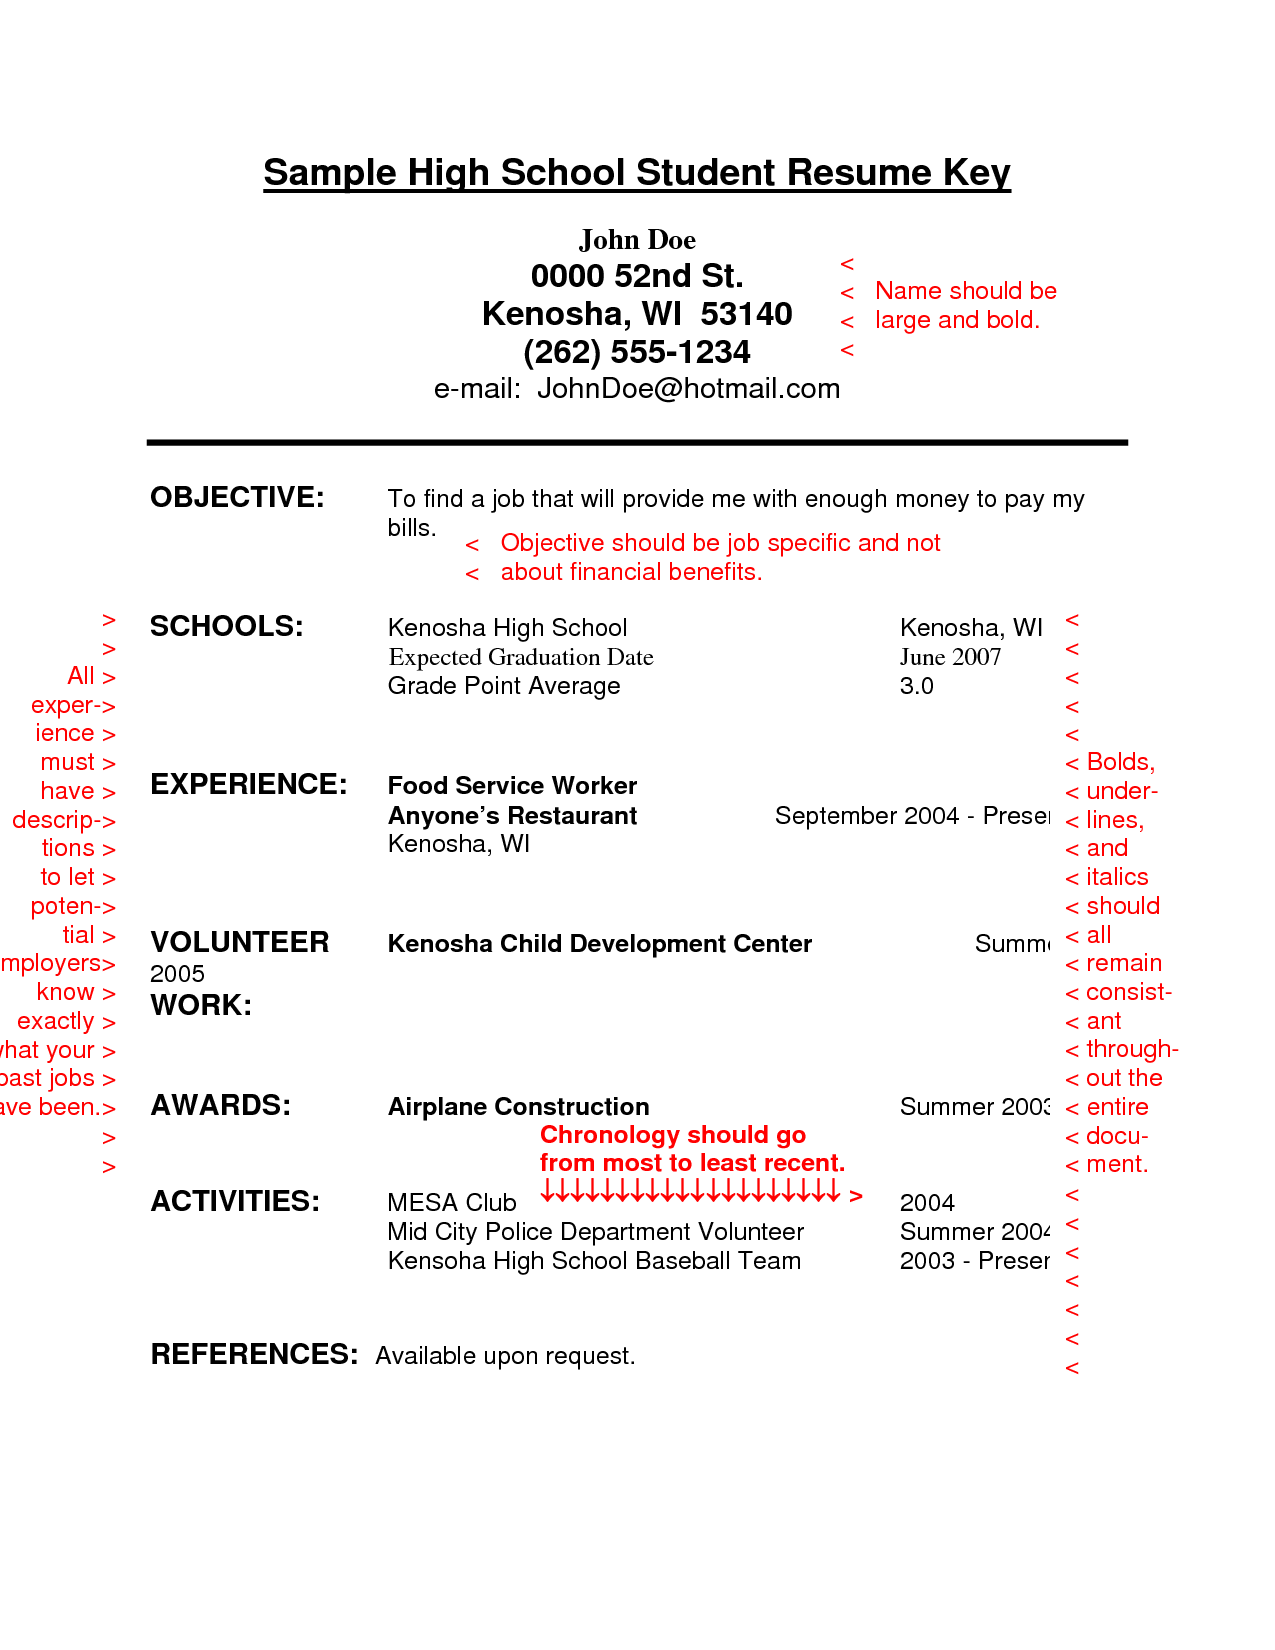 Resume Sample For High School Students With No Experience   Http://www.  Sample Resume For High School Student With No Work Experience